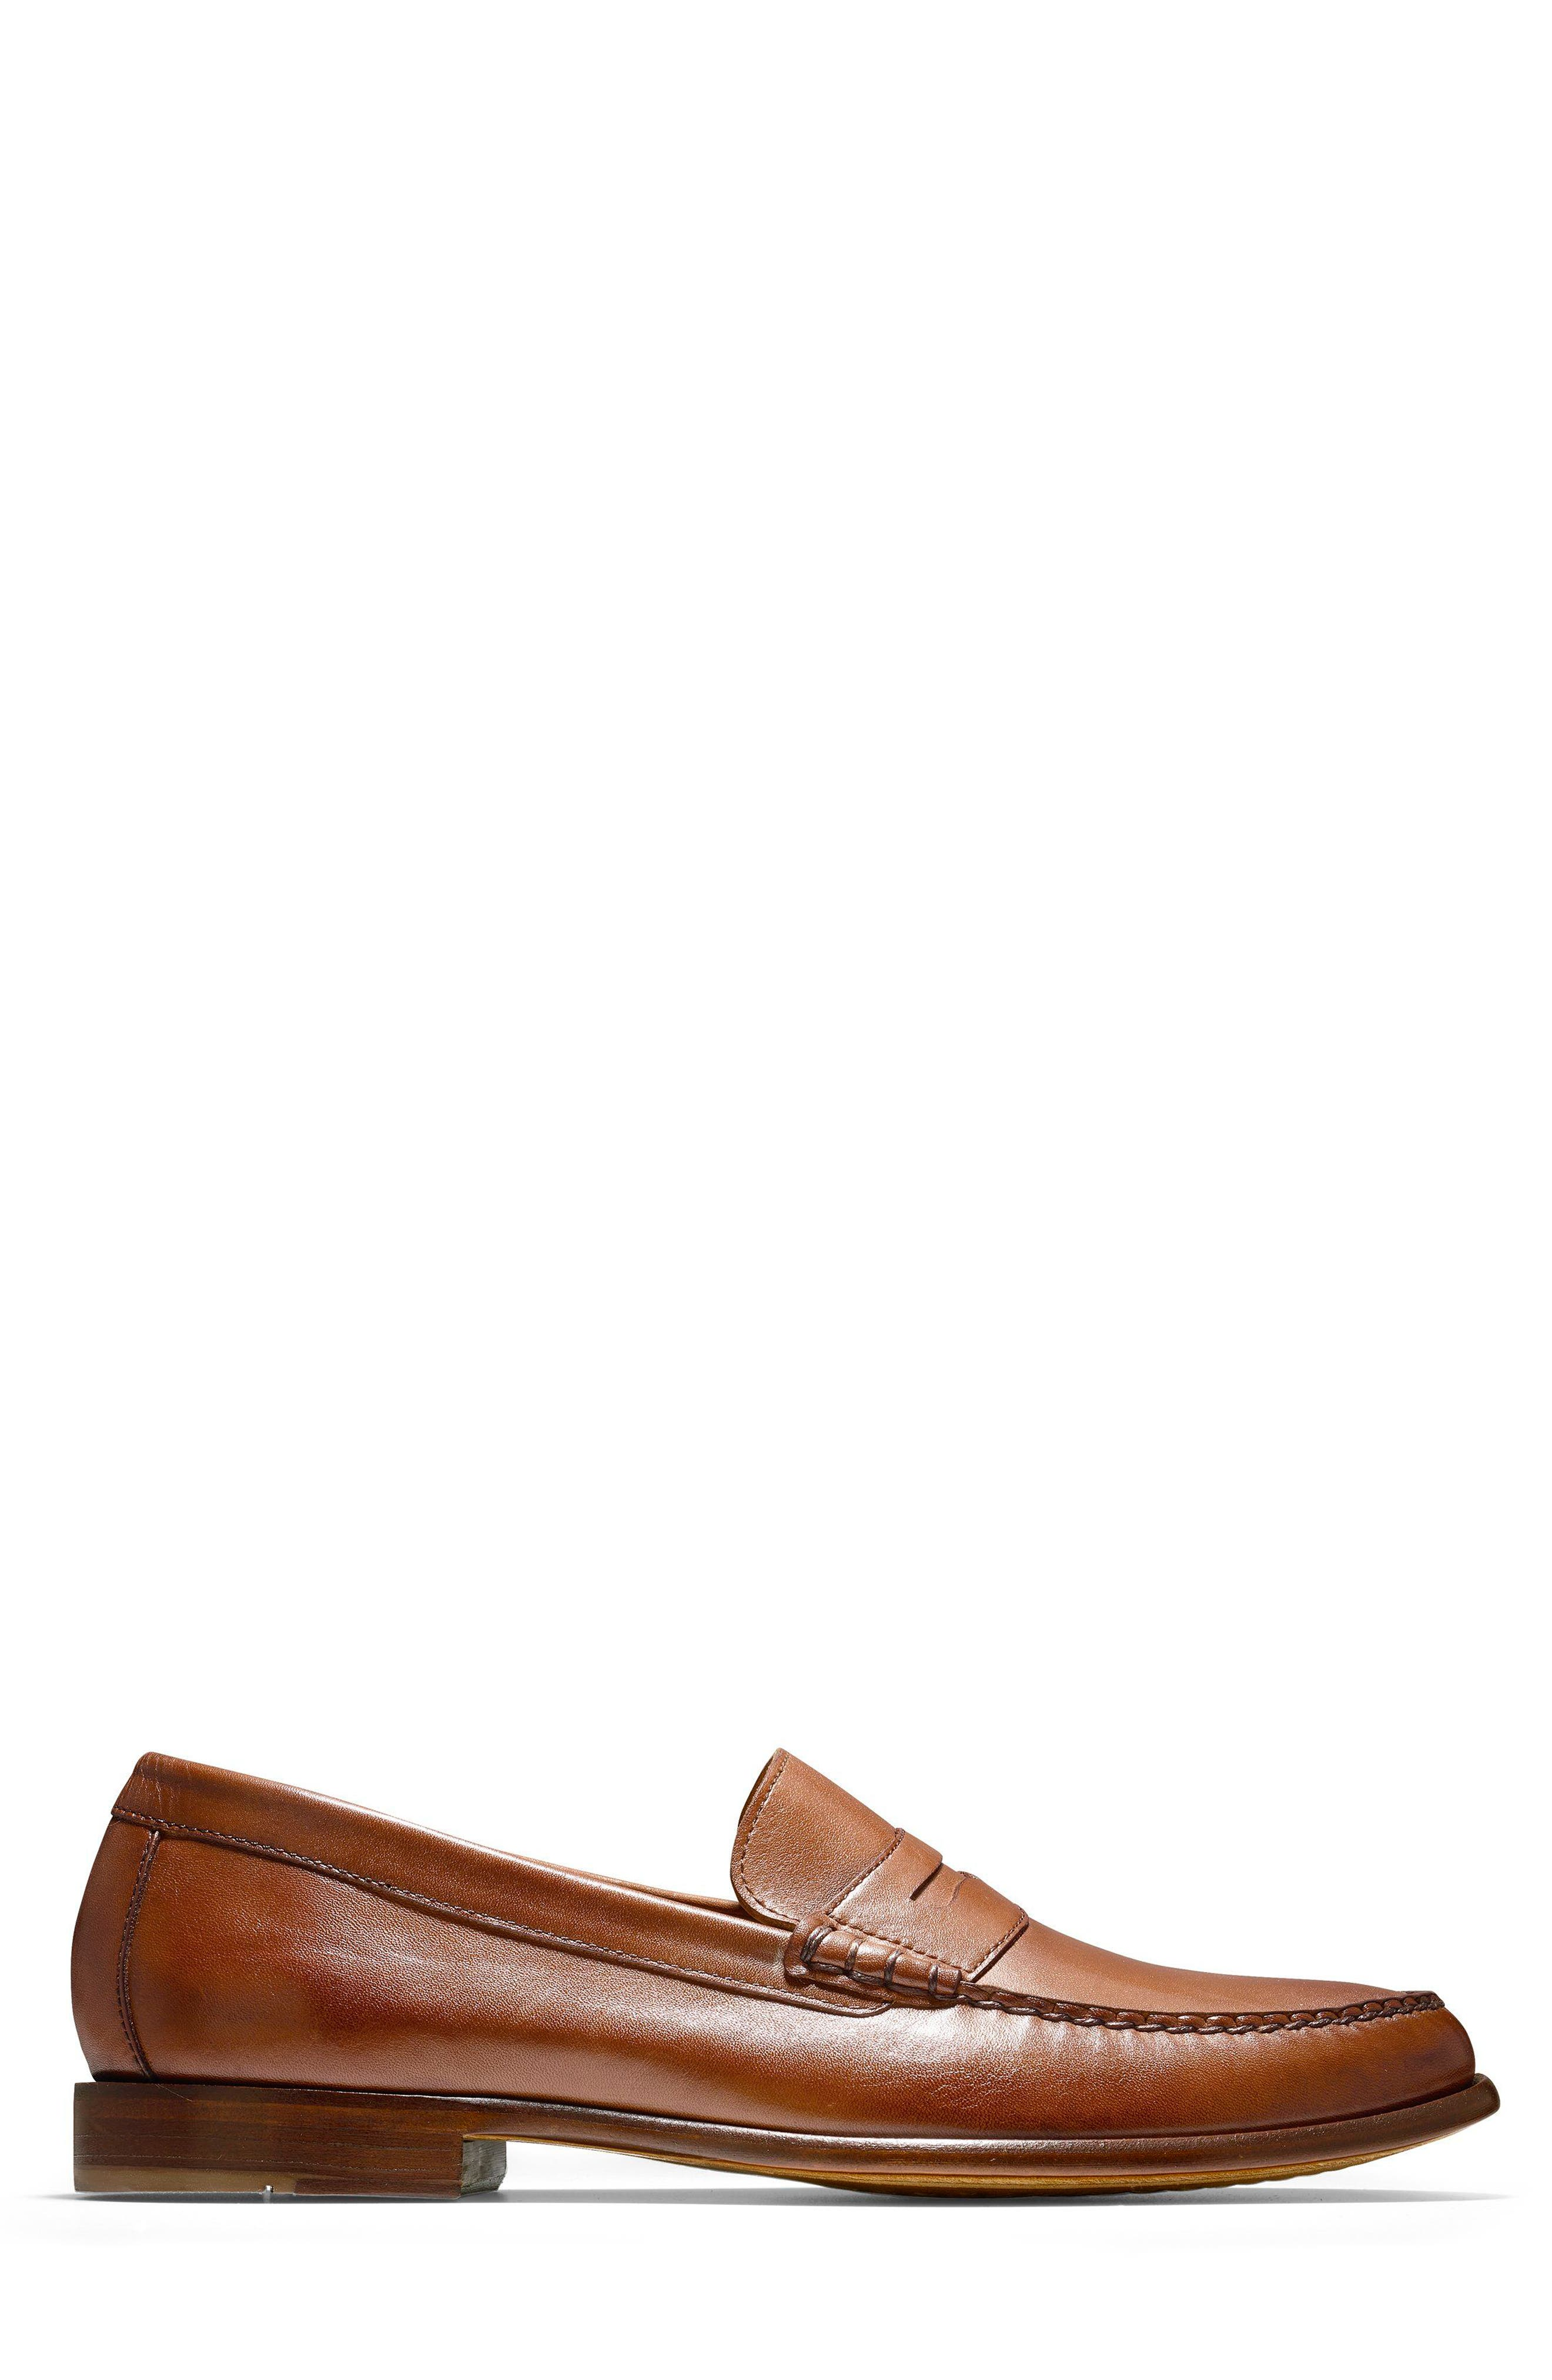 Pinch Penny Loafer,                             Alternate thumbnail 3, color,                             British Tan Leather